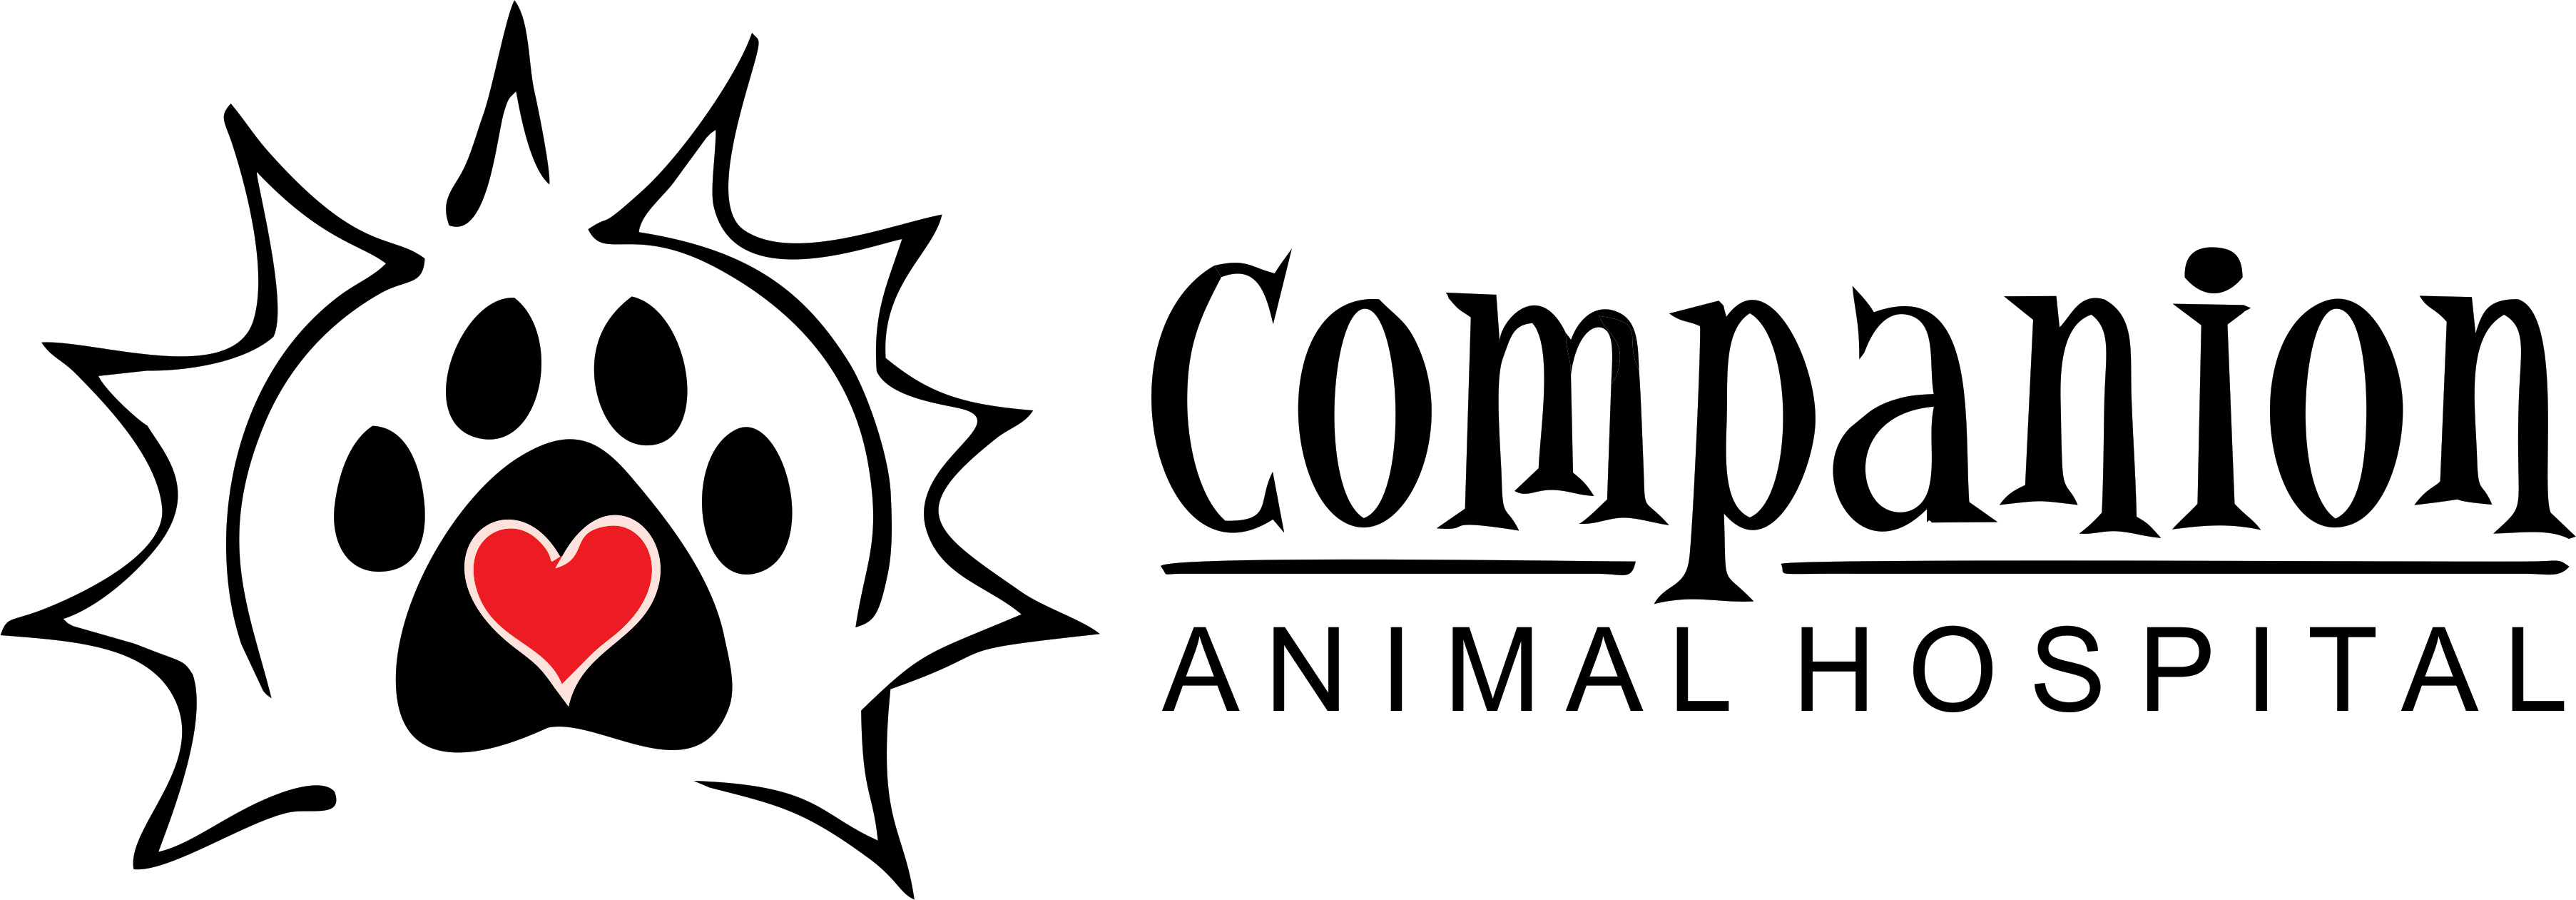 Companion Animal Hospital in Yorkton, Saskatchewan